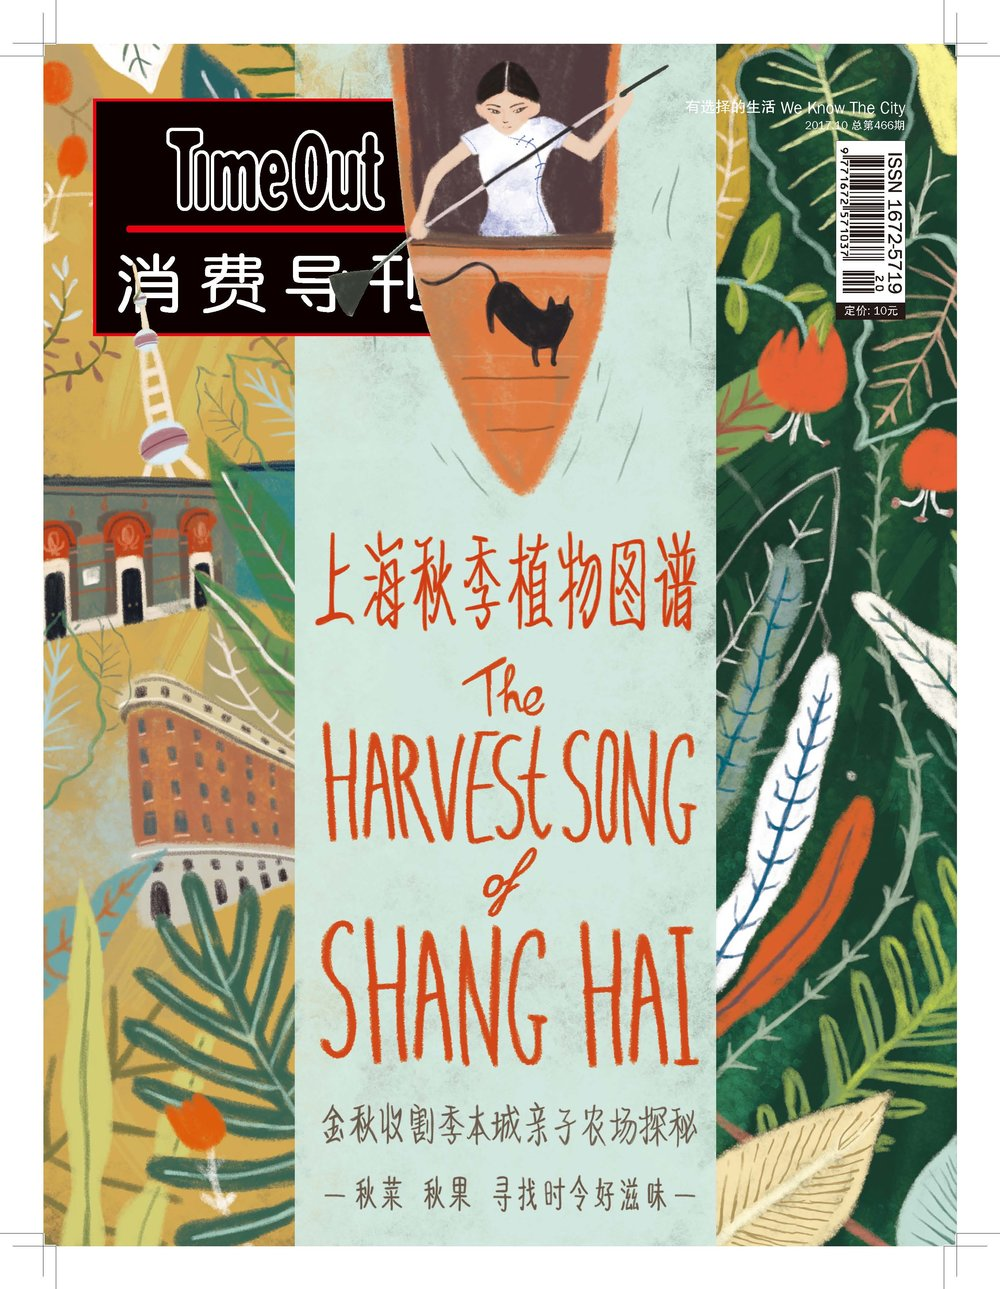 TimeOut SH_Wing Shya_cover.jpg